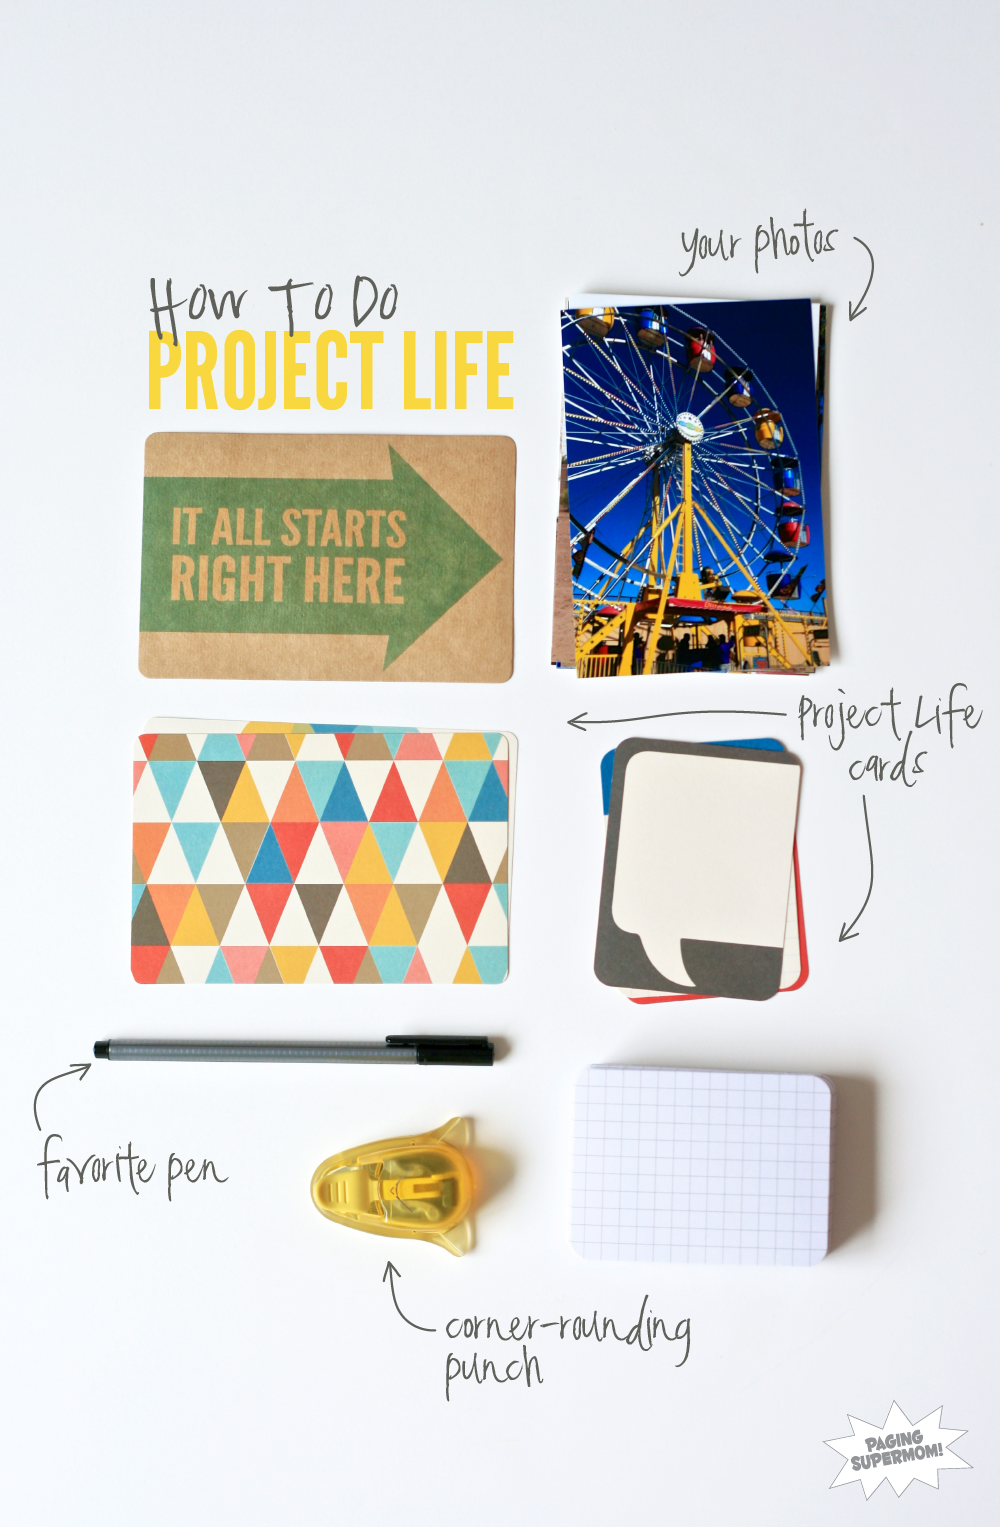 How to Do Project Life for your Family Album at PagingSupermom.com